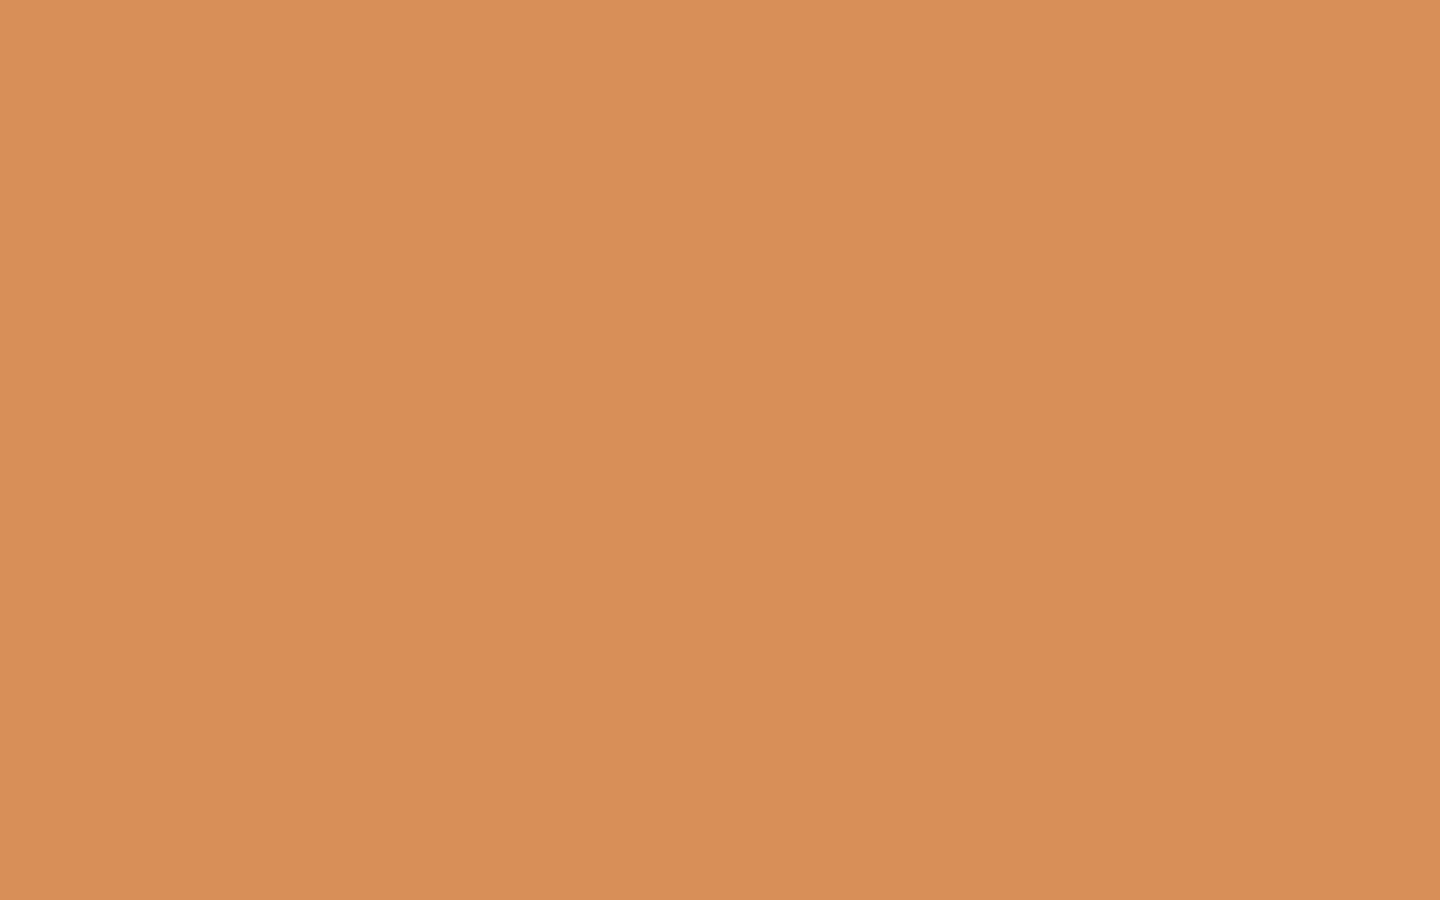 1440x900 Persian Orange Solid Color Background